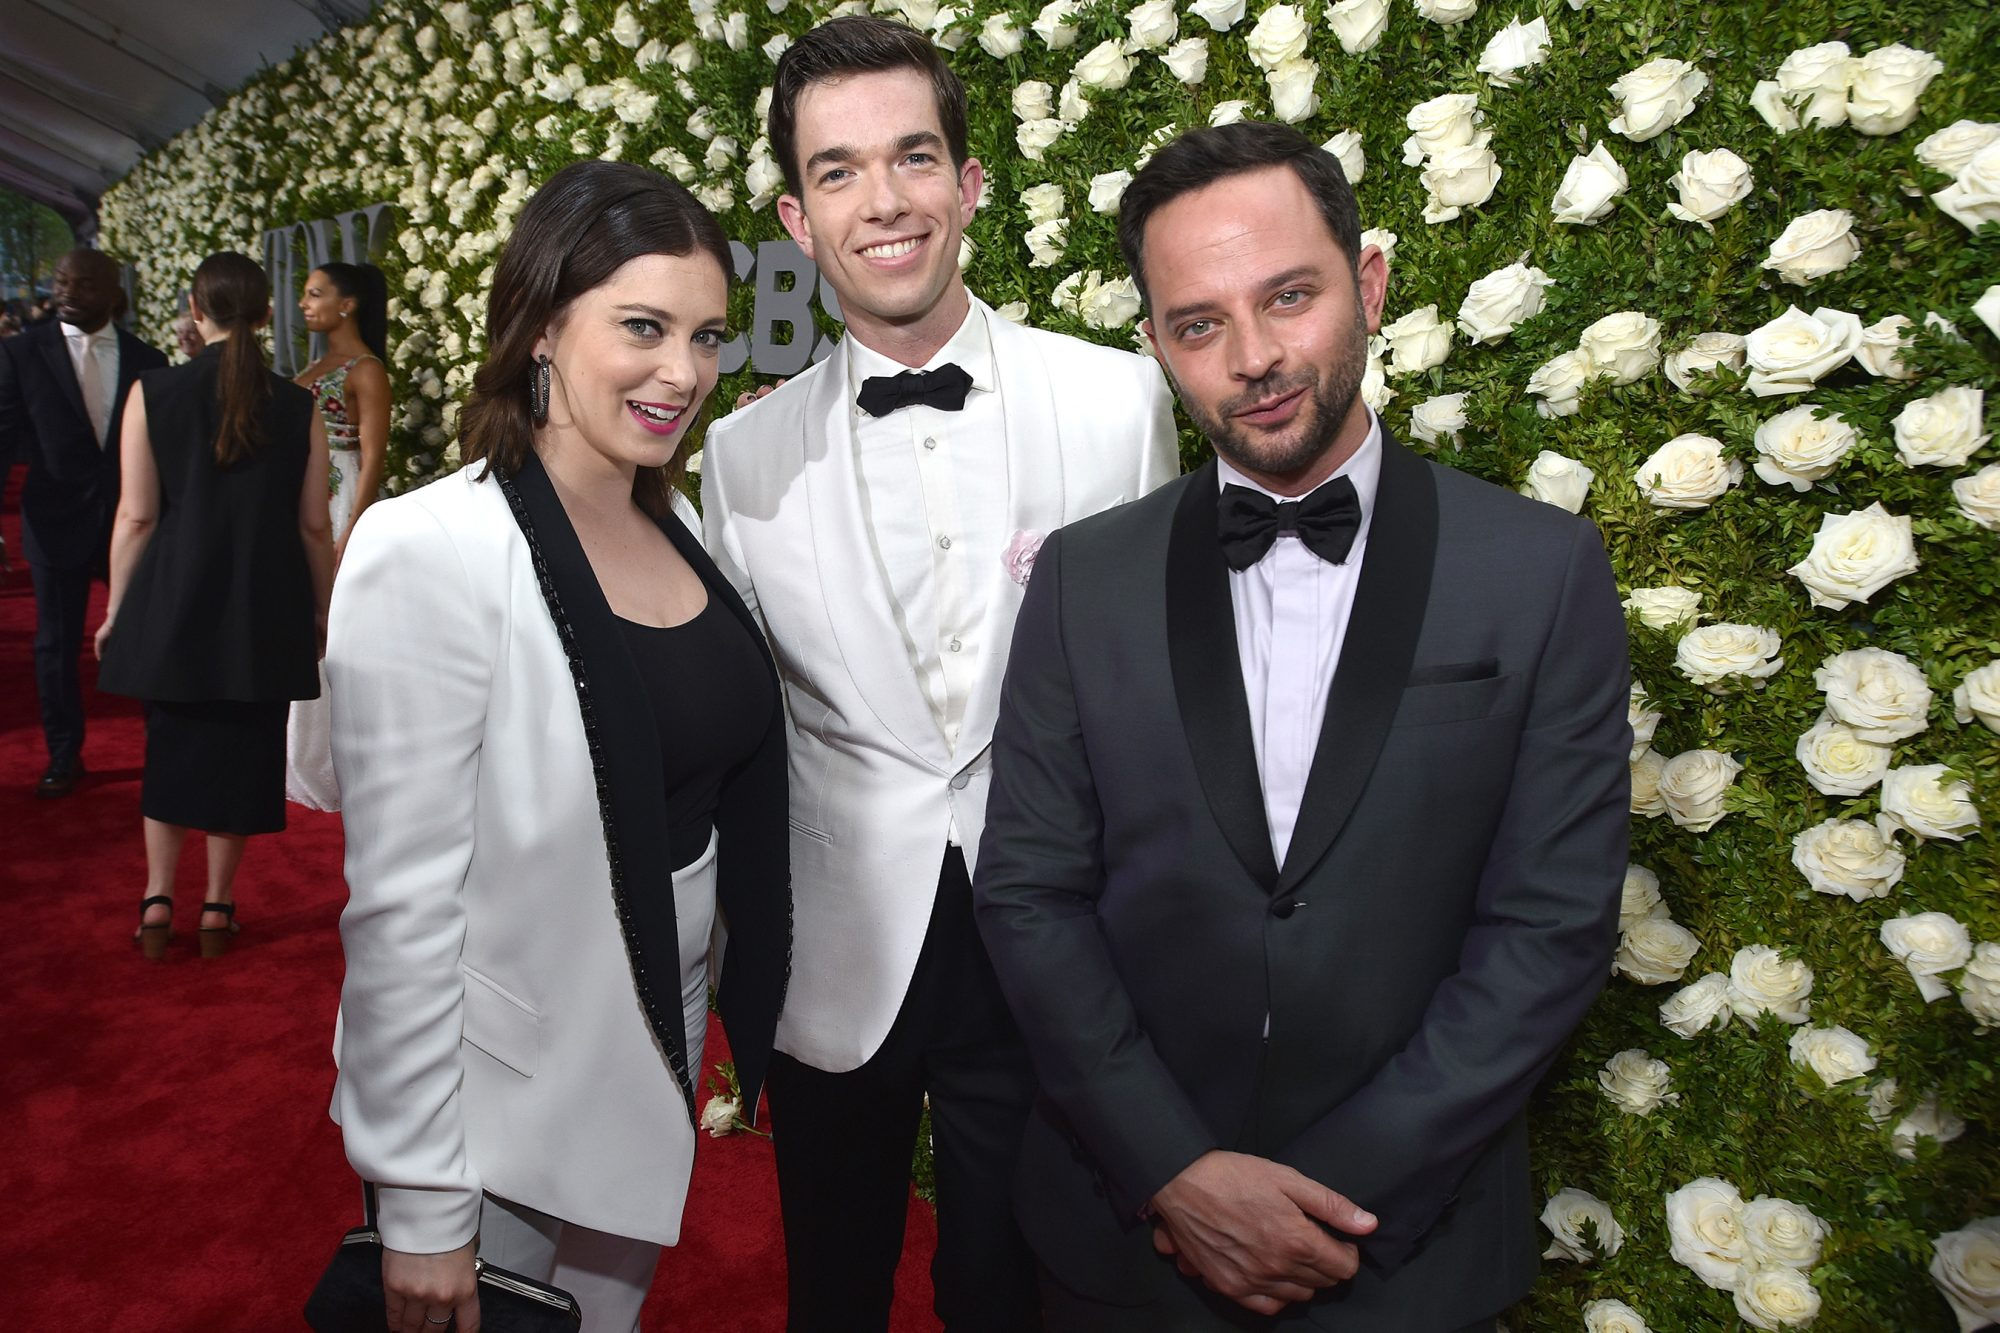 With John Mulaney and Nick Kroll